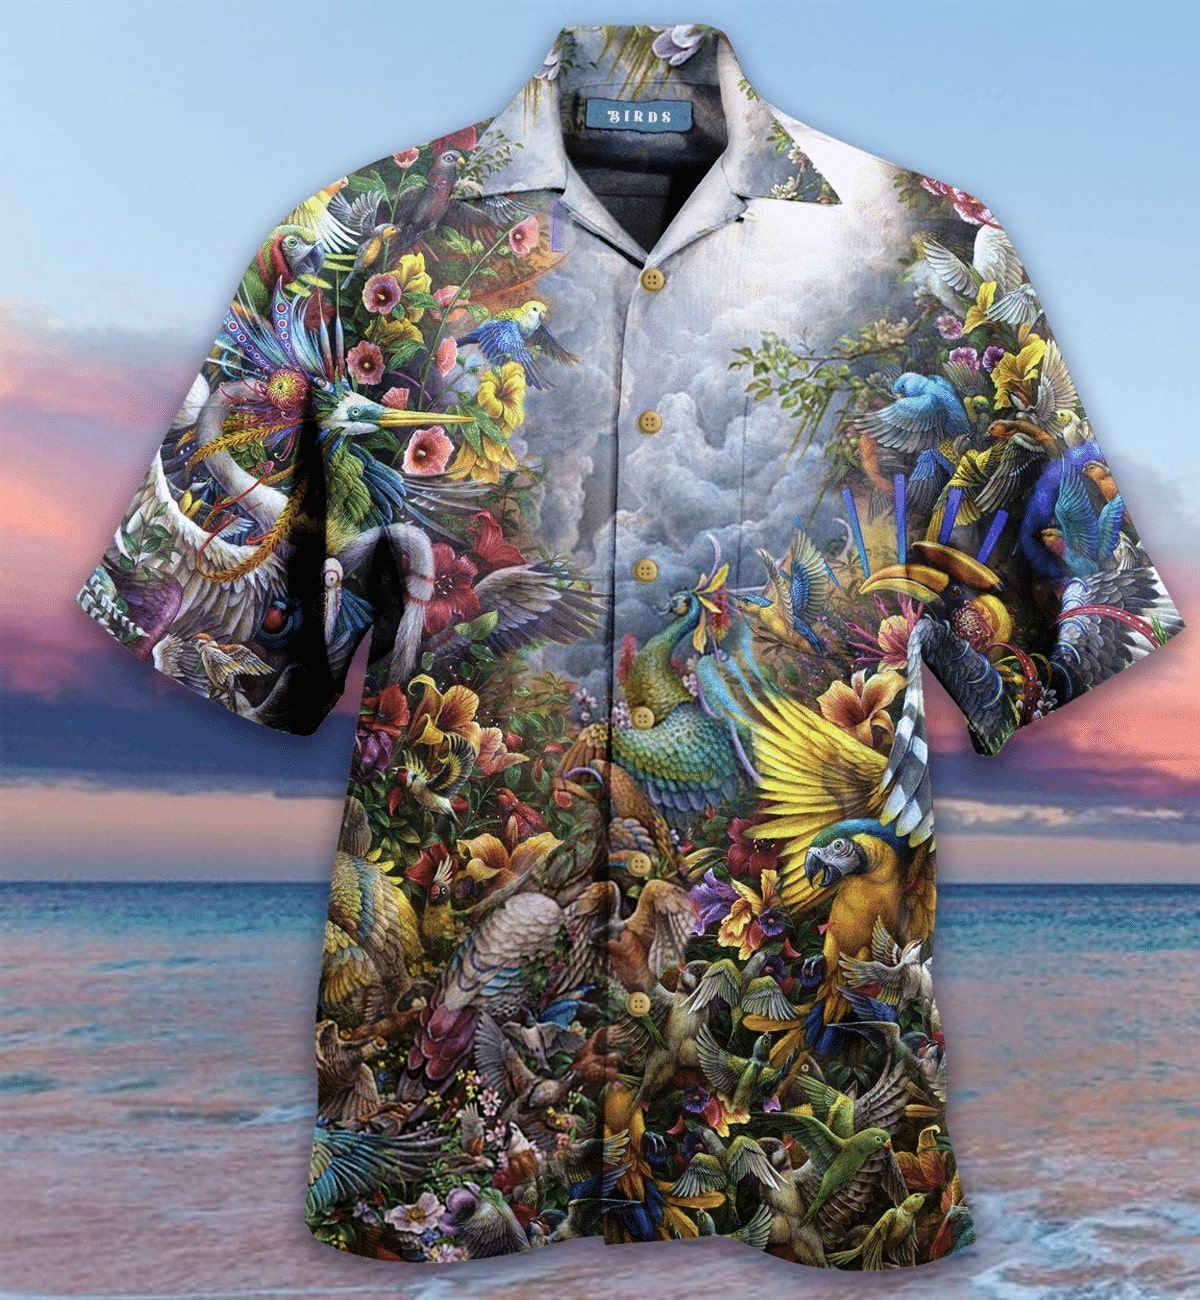 [Top-selling] birds in the heaven all over printed hawaiian shirt - maria